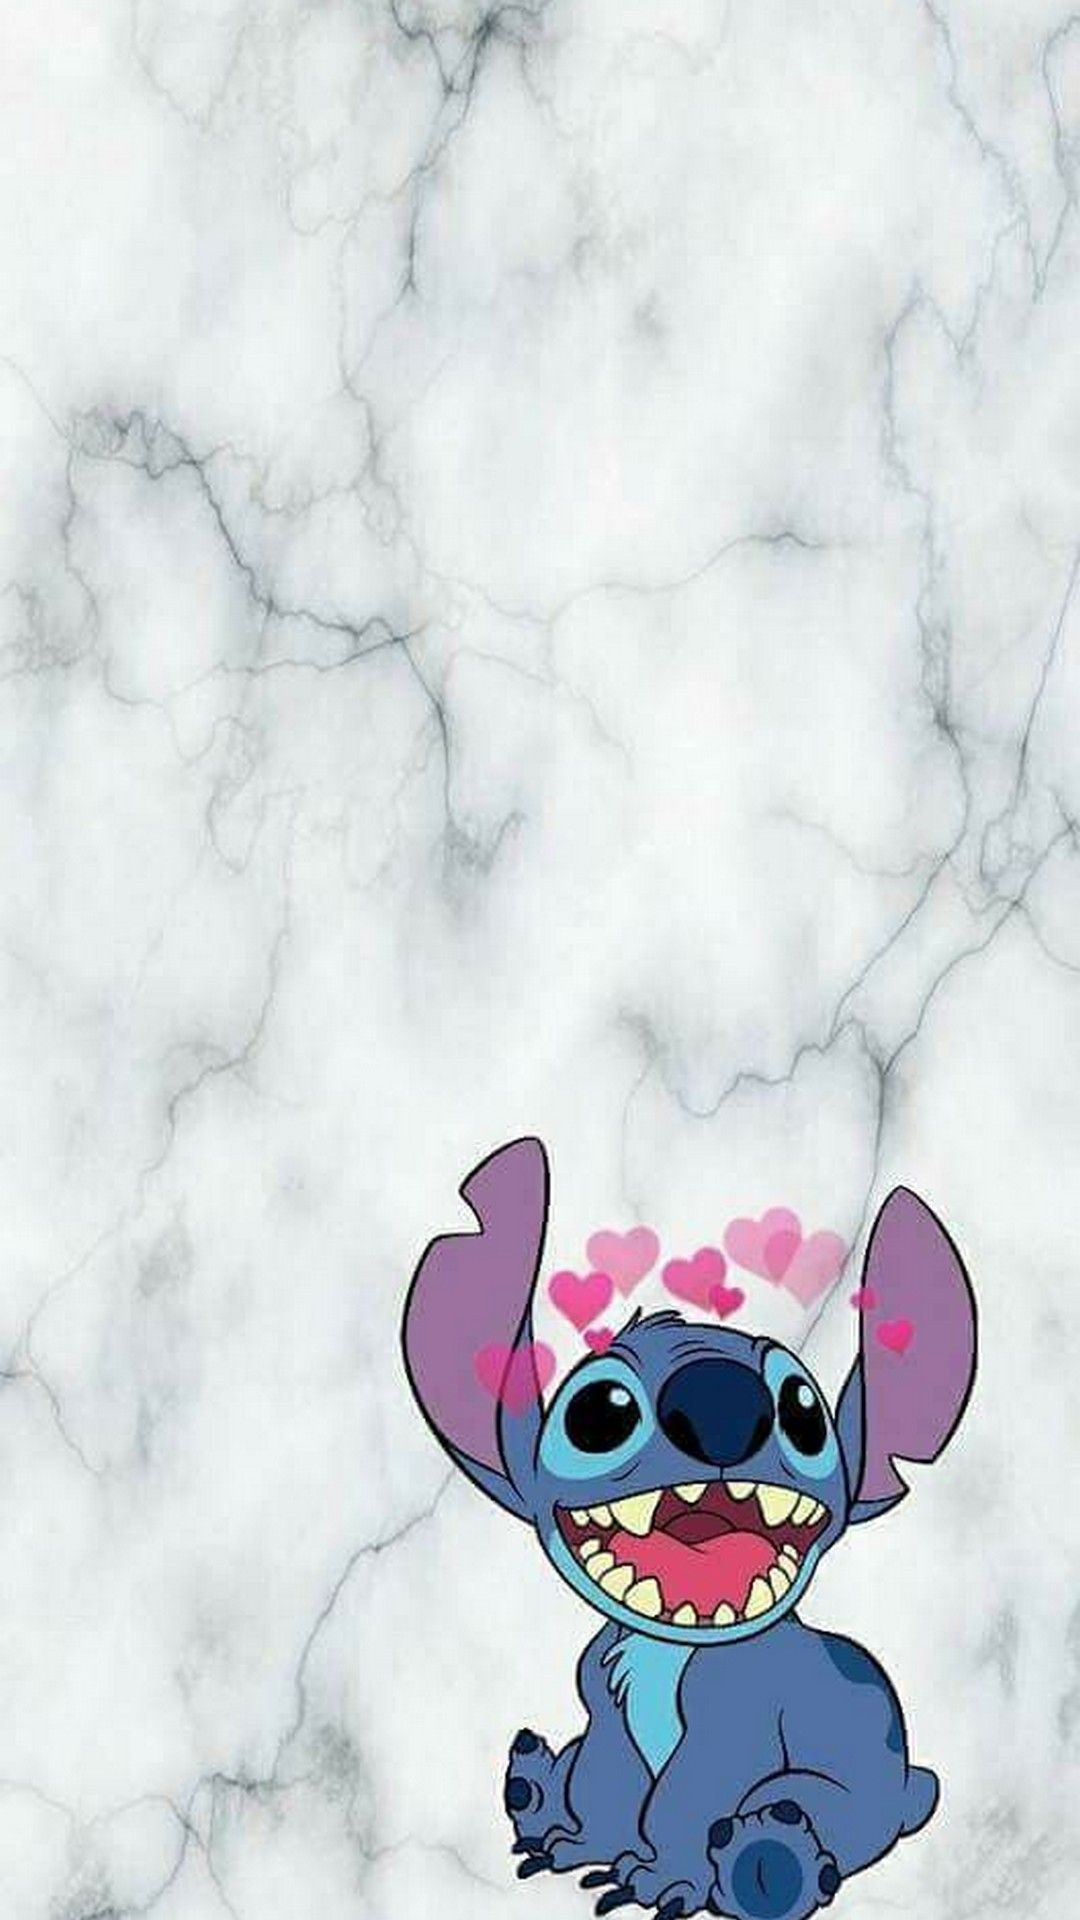 Cute Stitch iPhone Wallpapers Top Free Cute Stitch